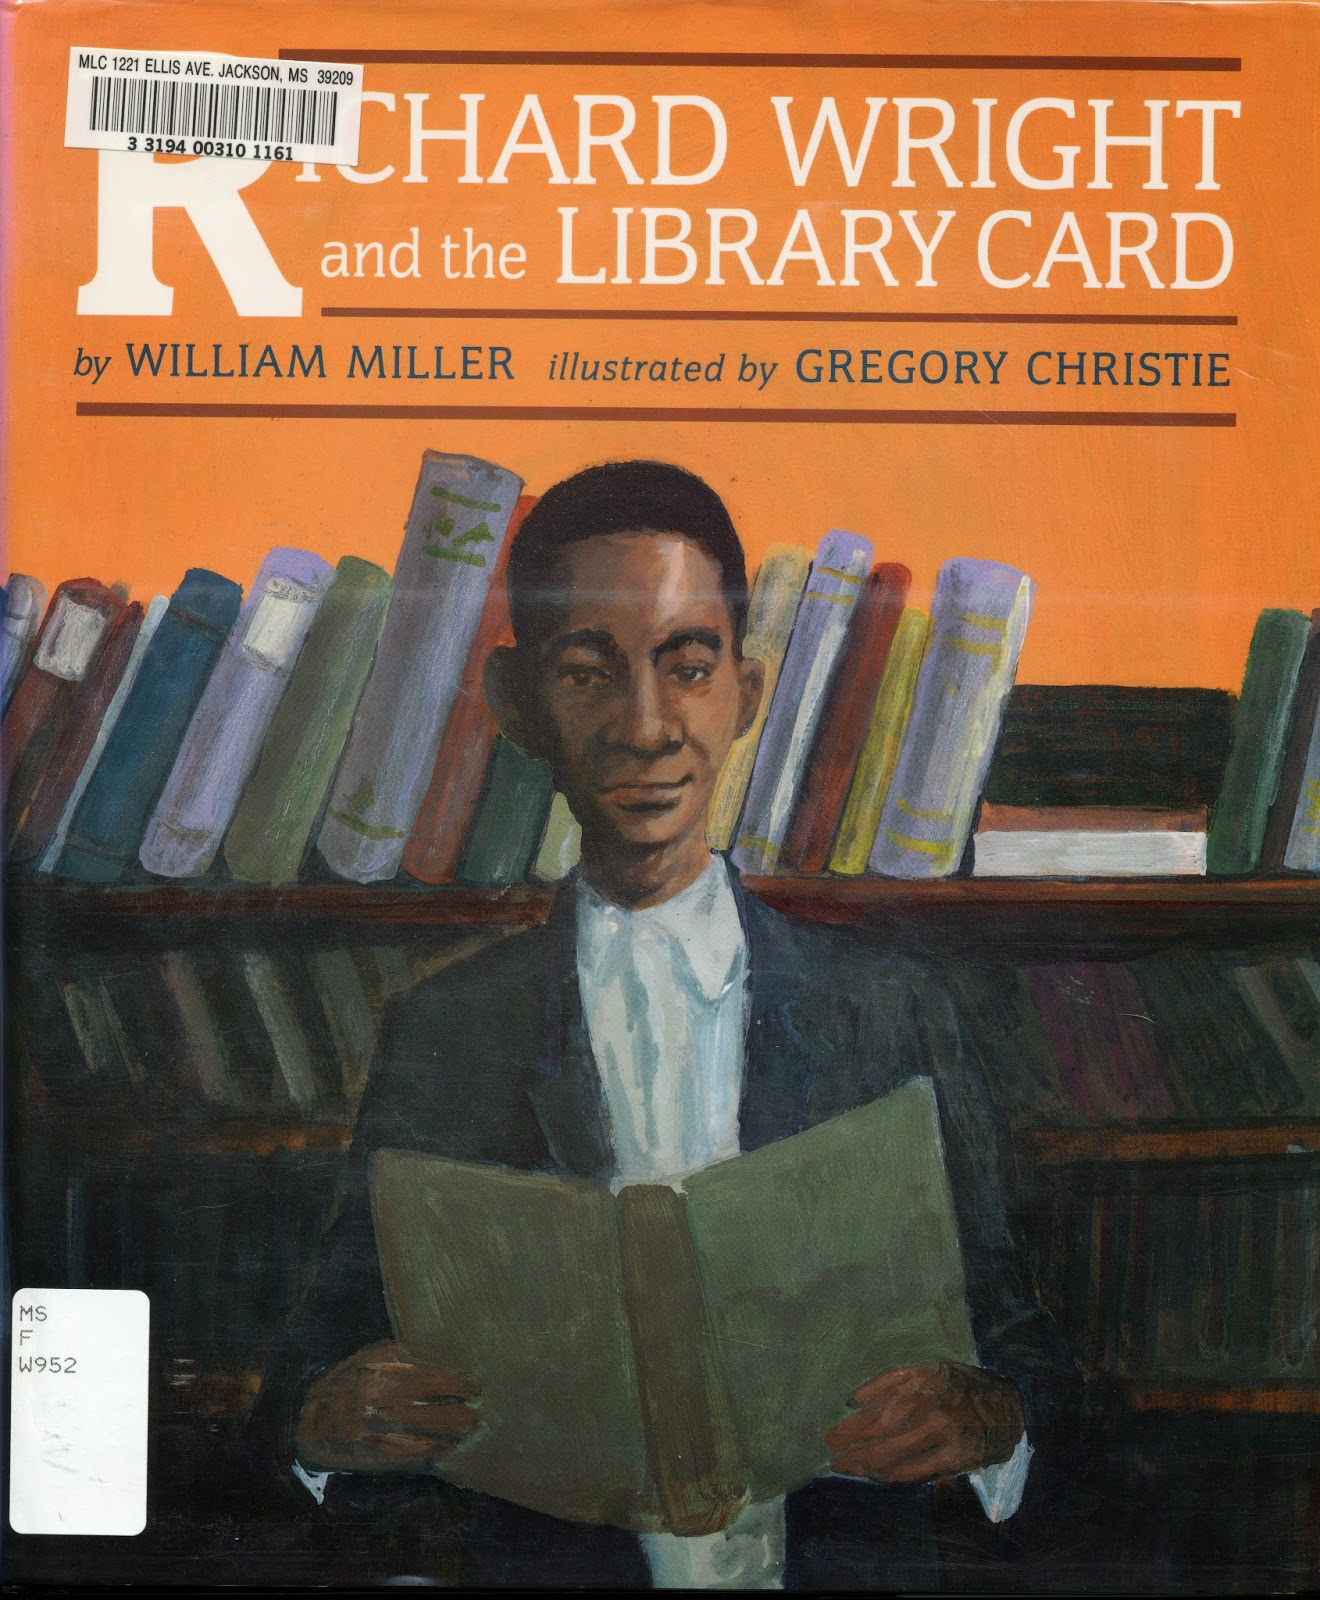 analysis of the library card by richard wright Richard wright and the library card by: william miller.